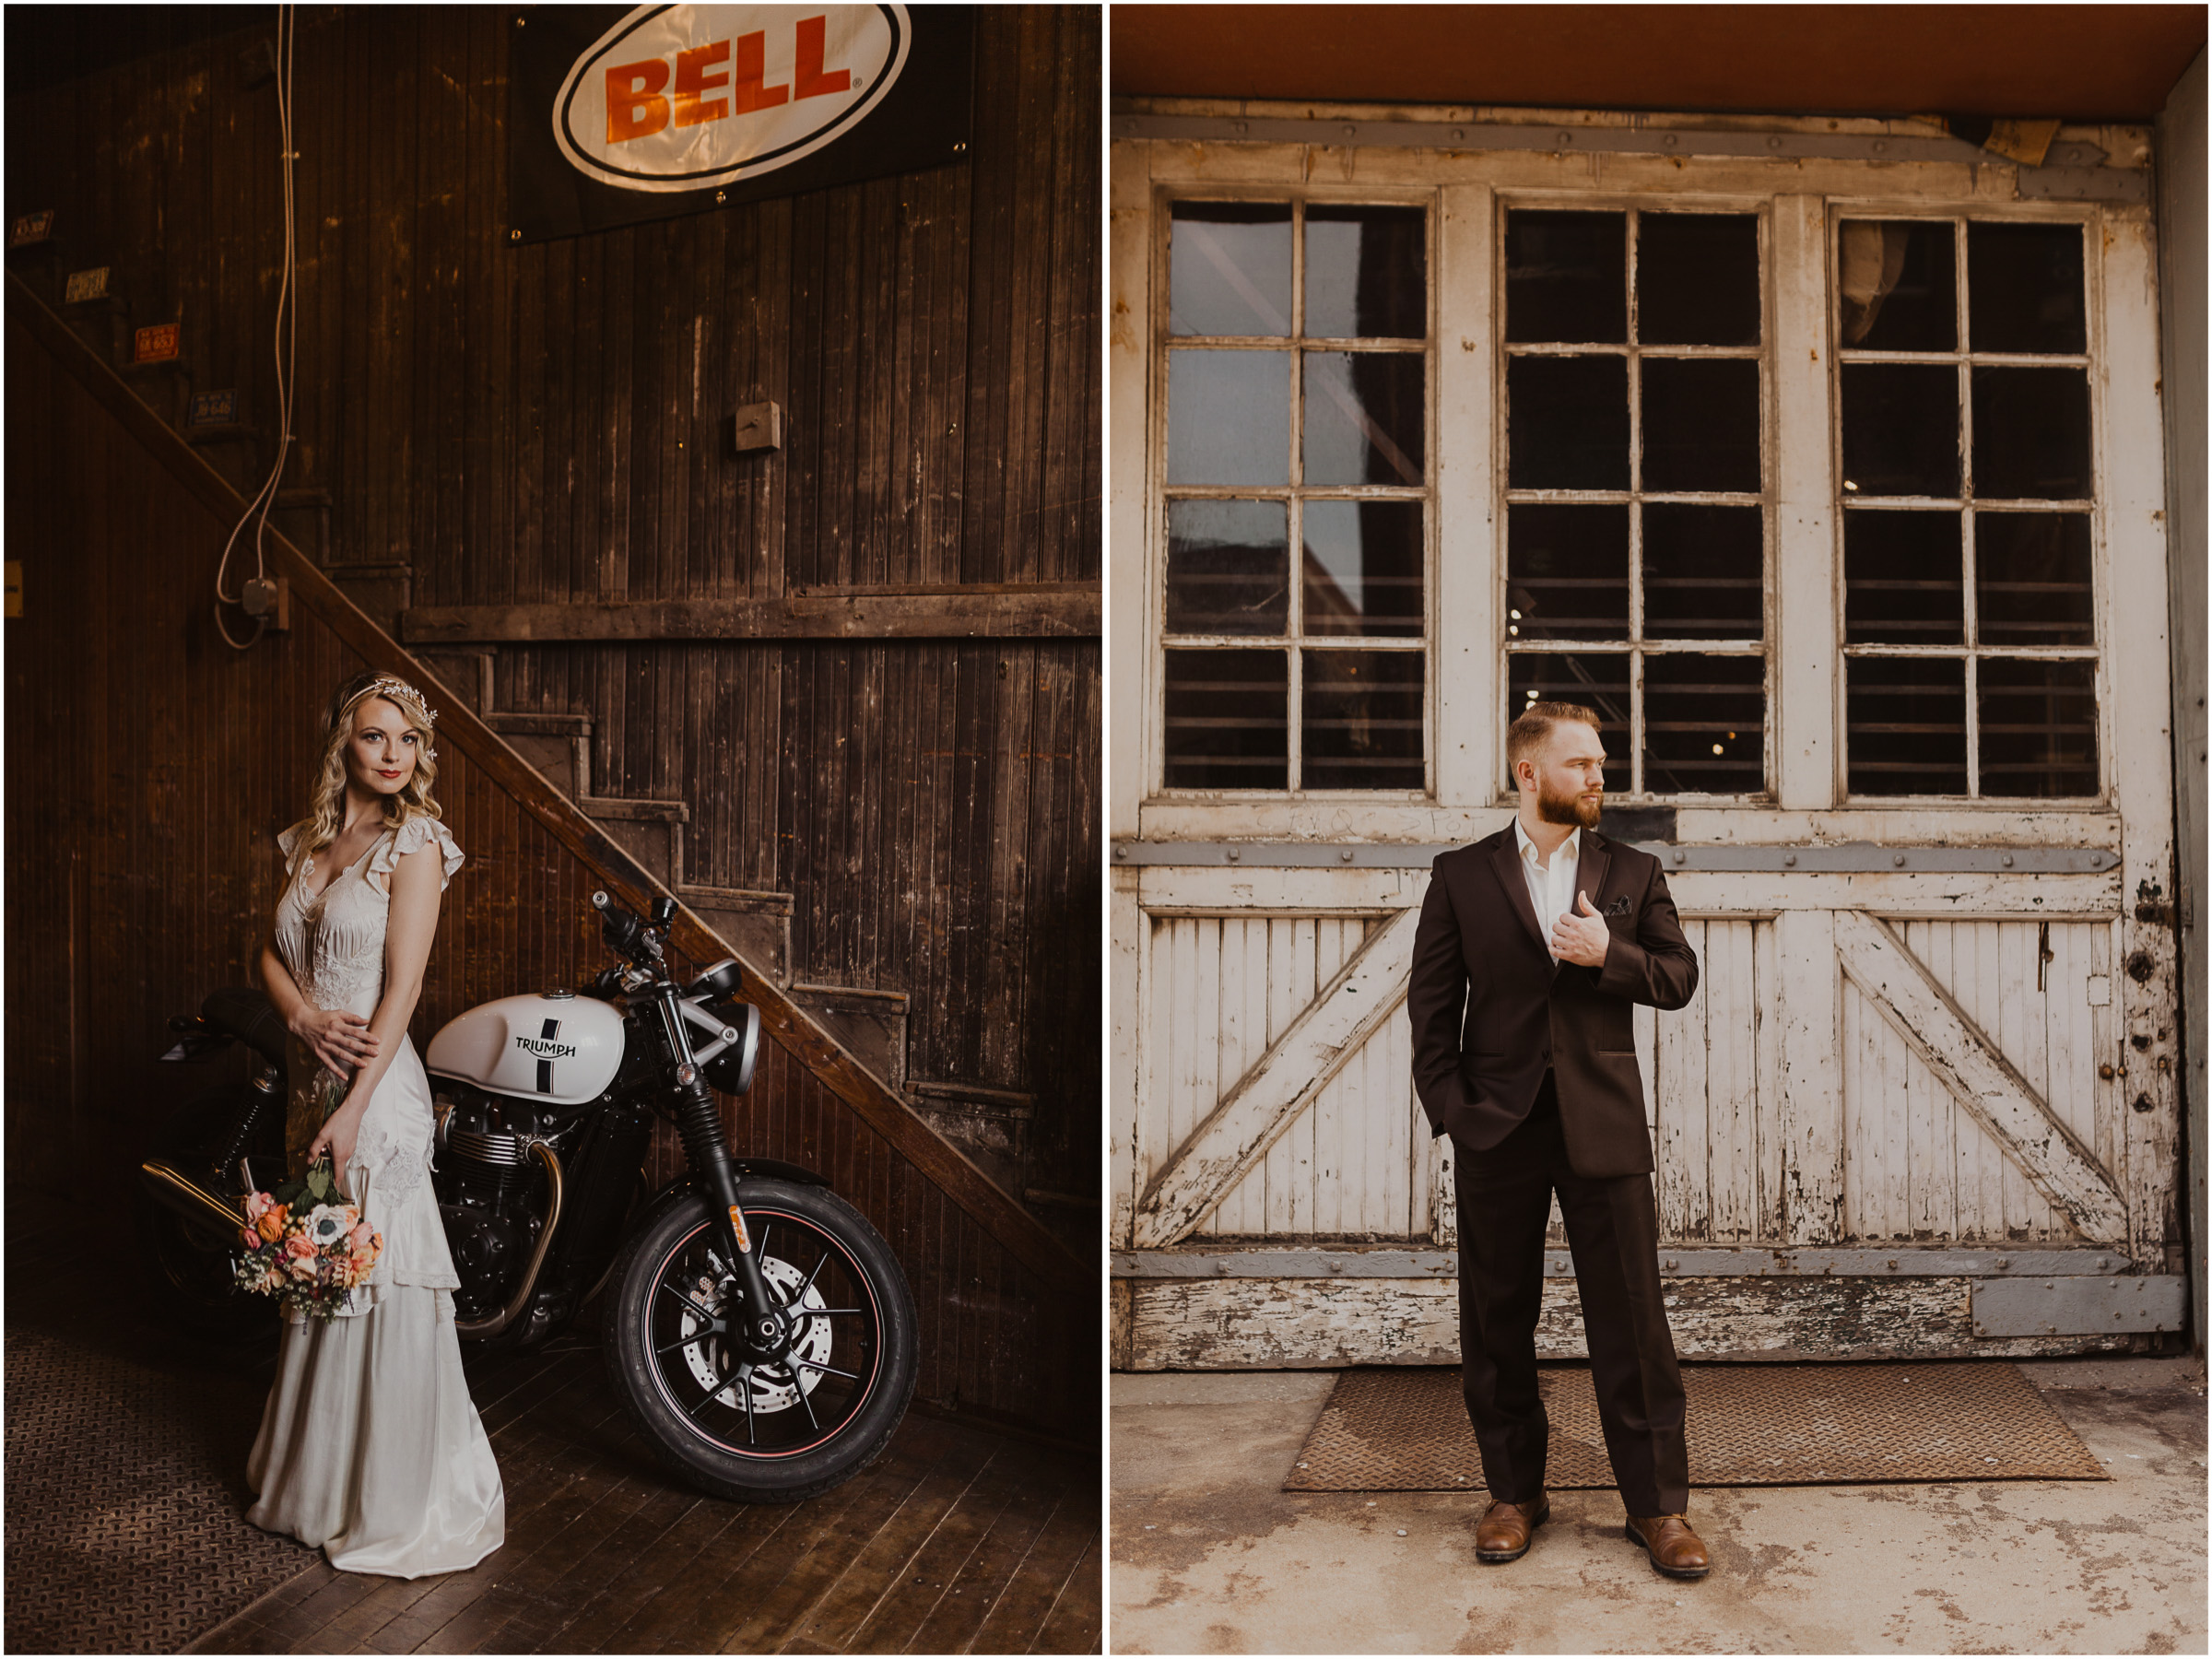 alyssa barletter photography styled shoot wedding inspiration kansas city west bottoms photographer motorcycle edgy intimate-21.jpg